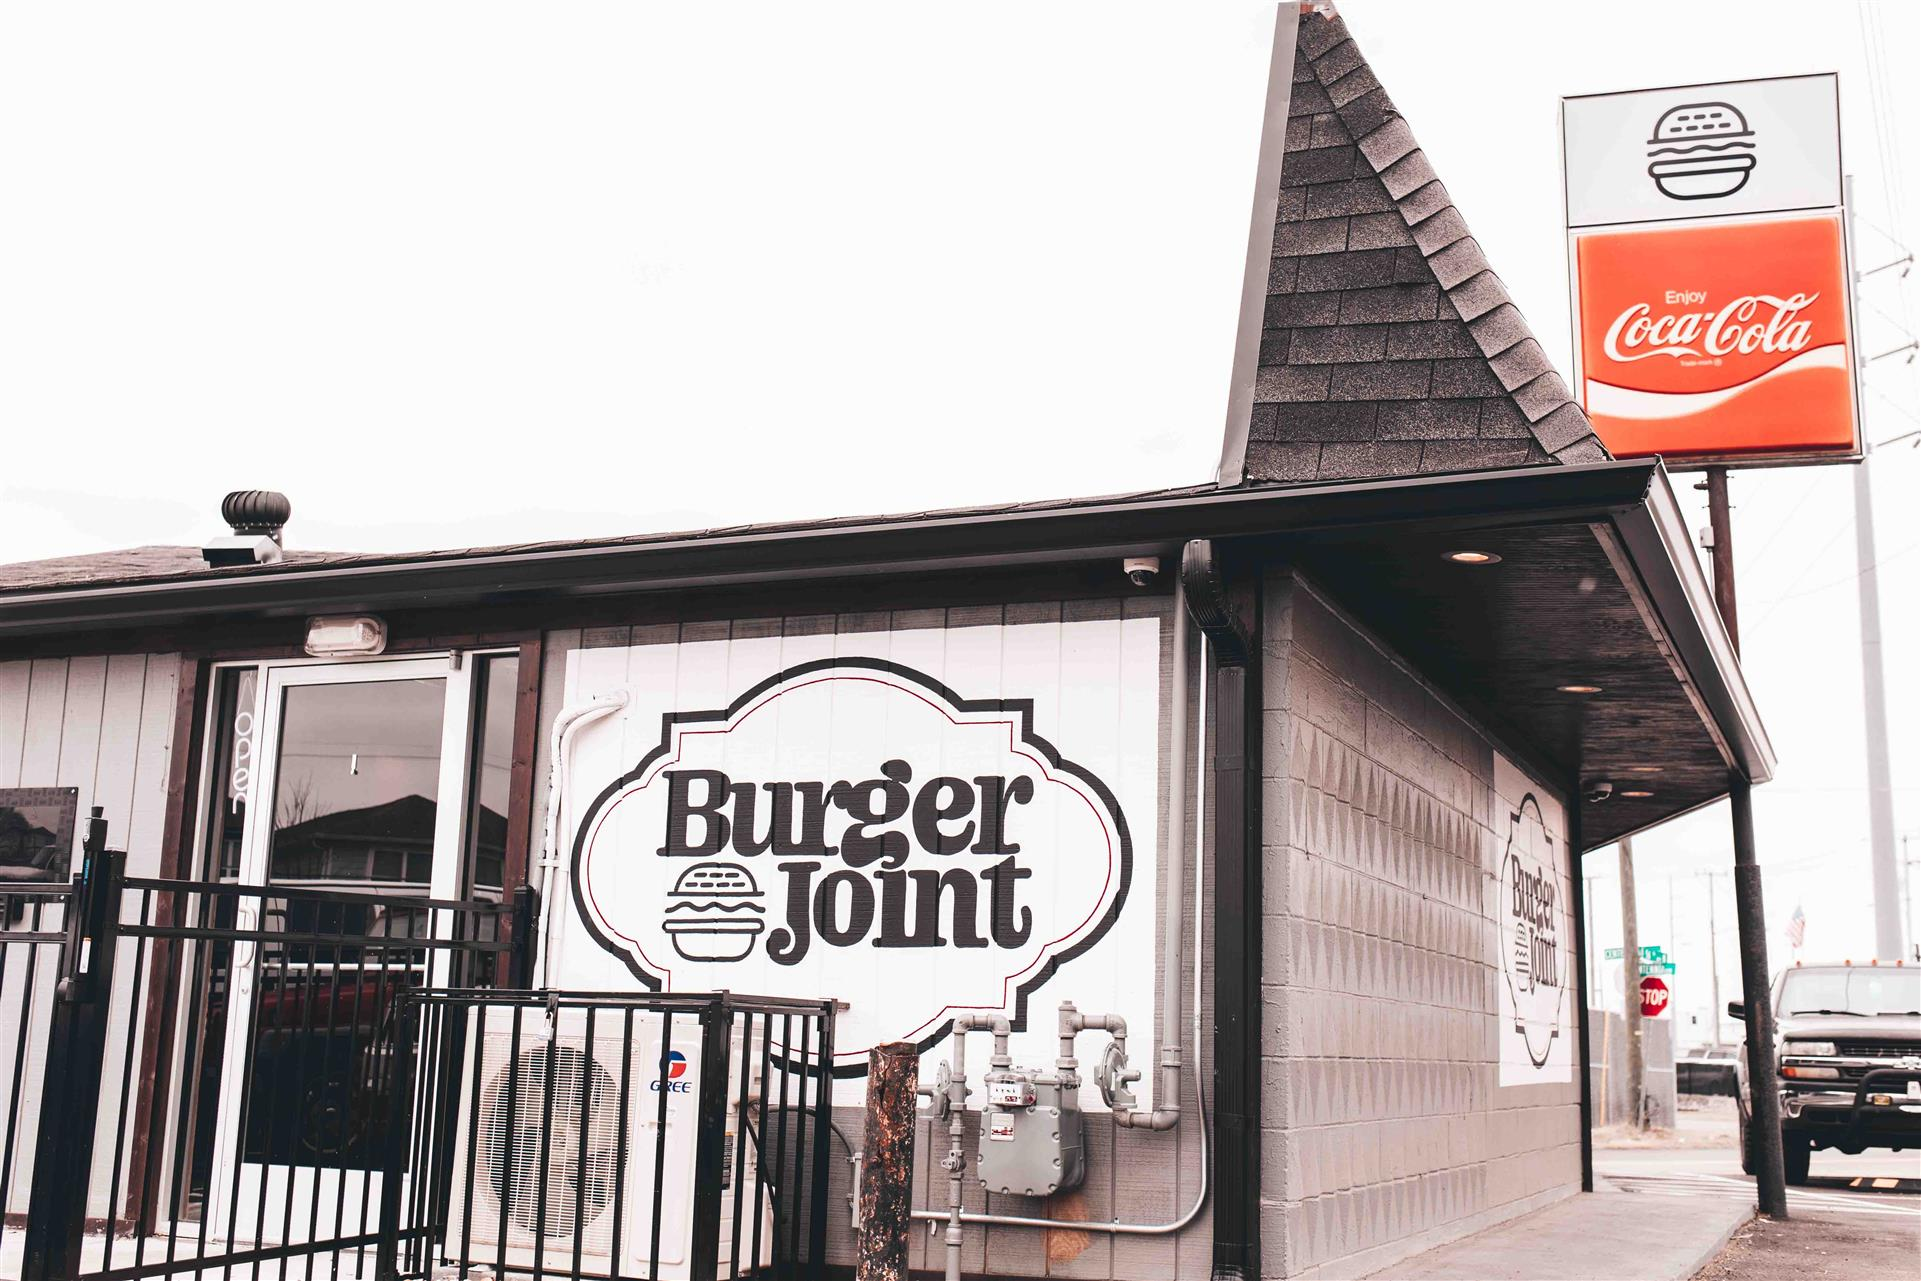 exterior of the restaurant with view of Burger Joint sign